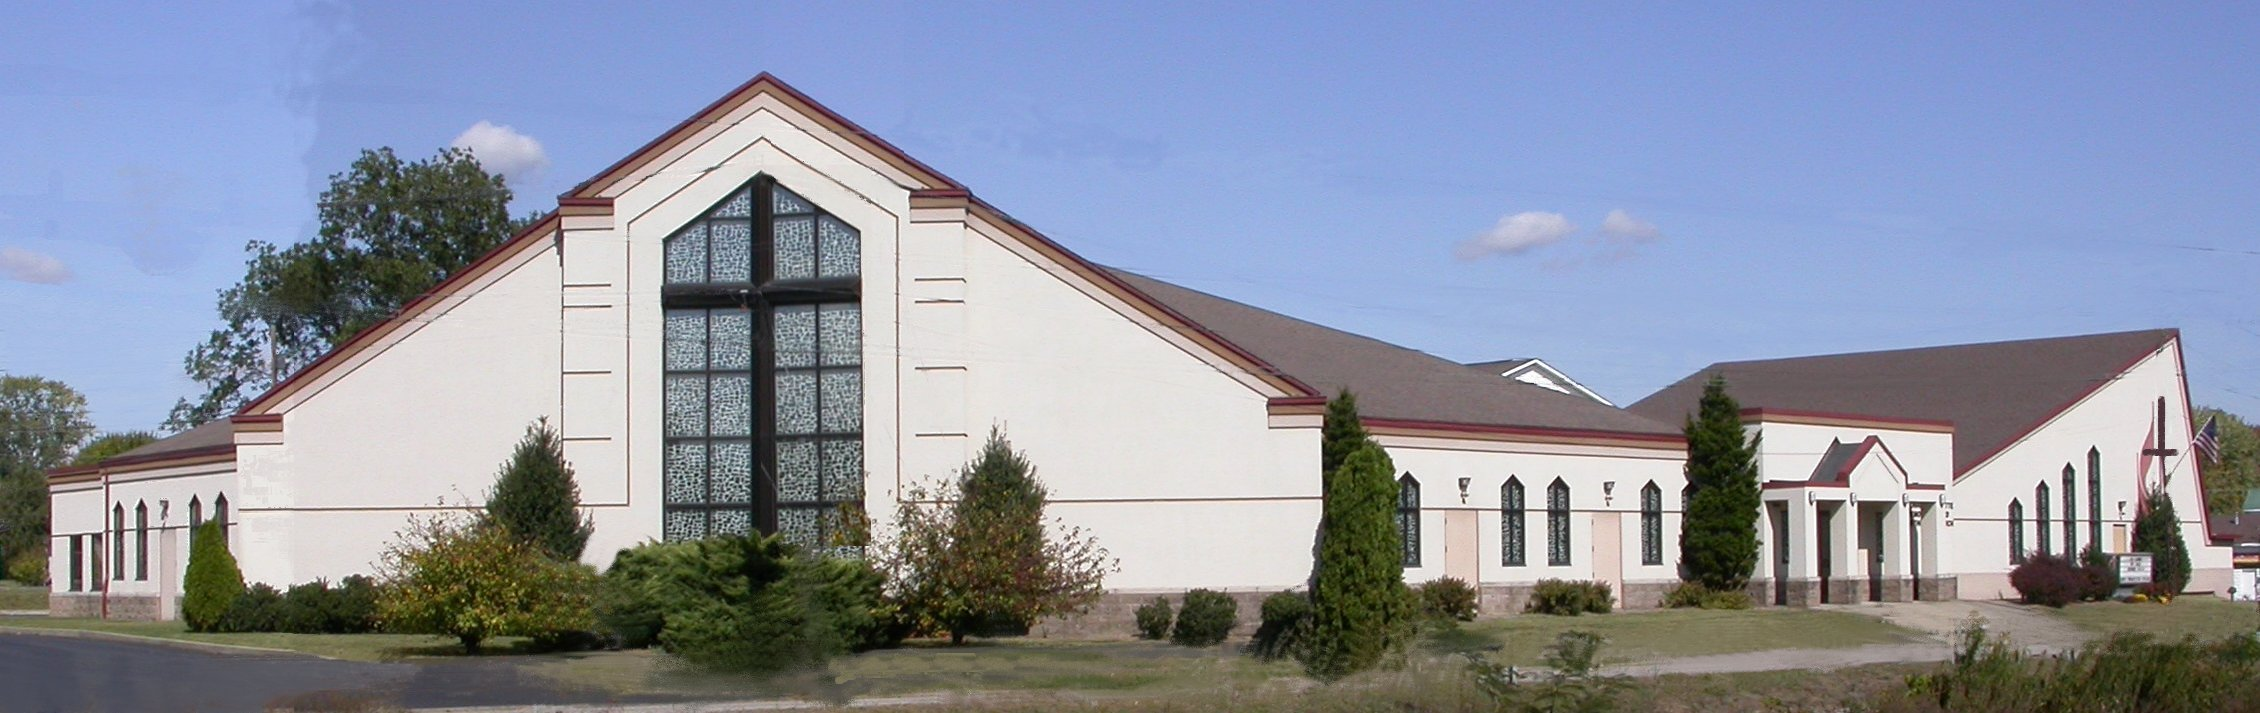 Forrest Burdette Memorial United Methodist Church (Street View)